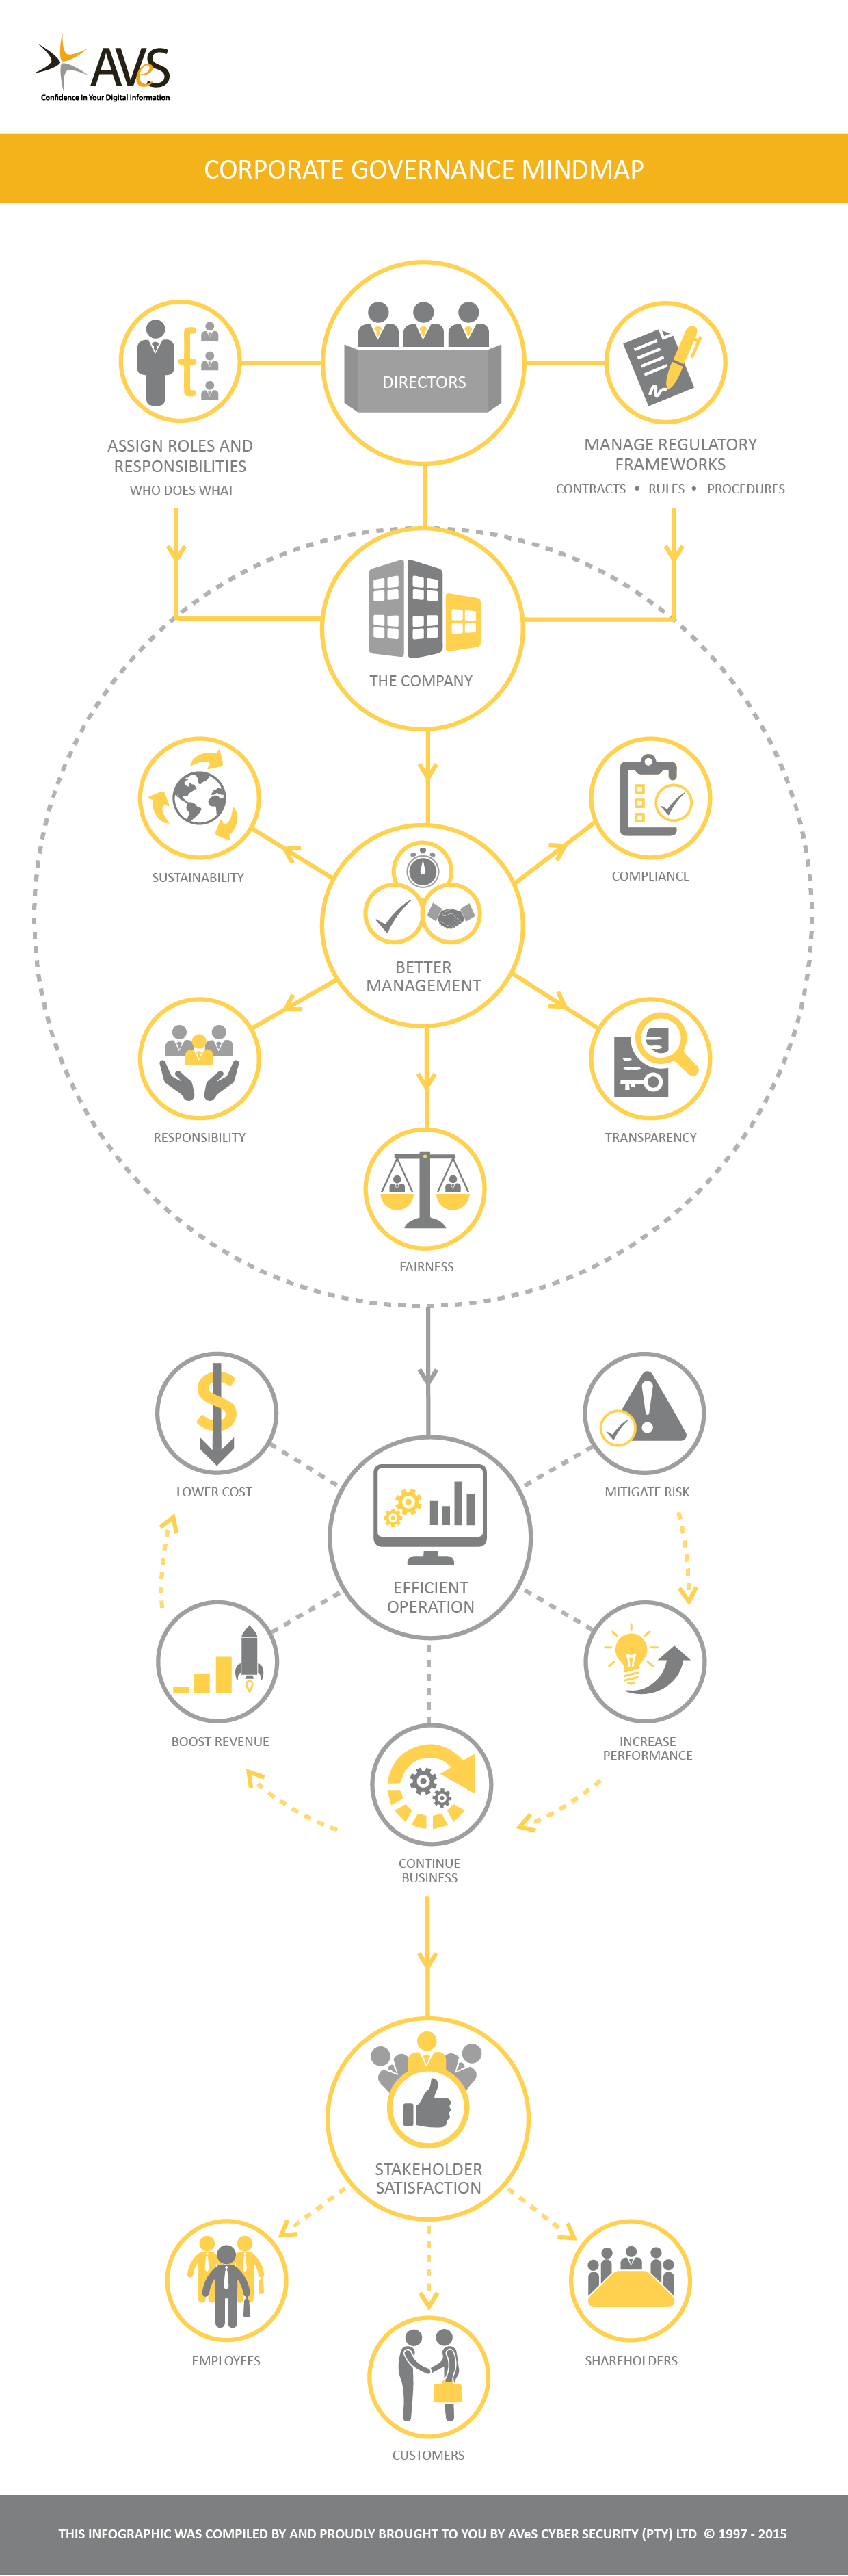 corporate governance infographic-01-01